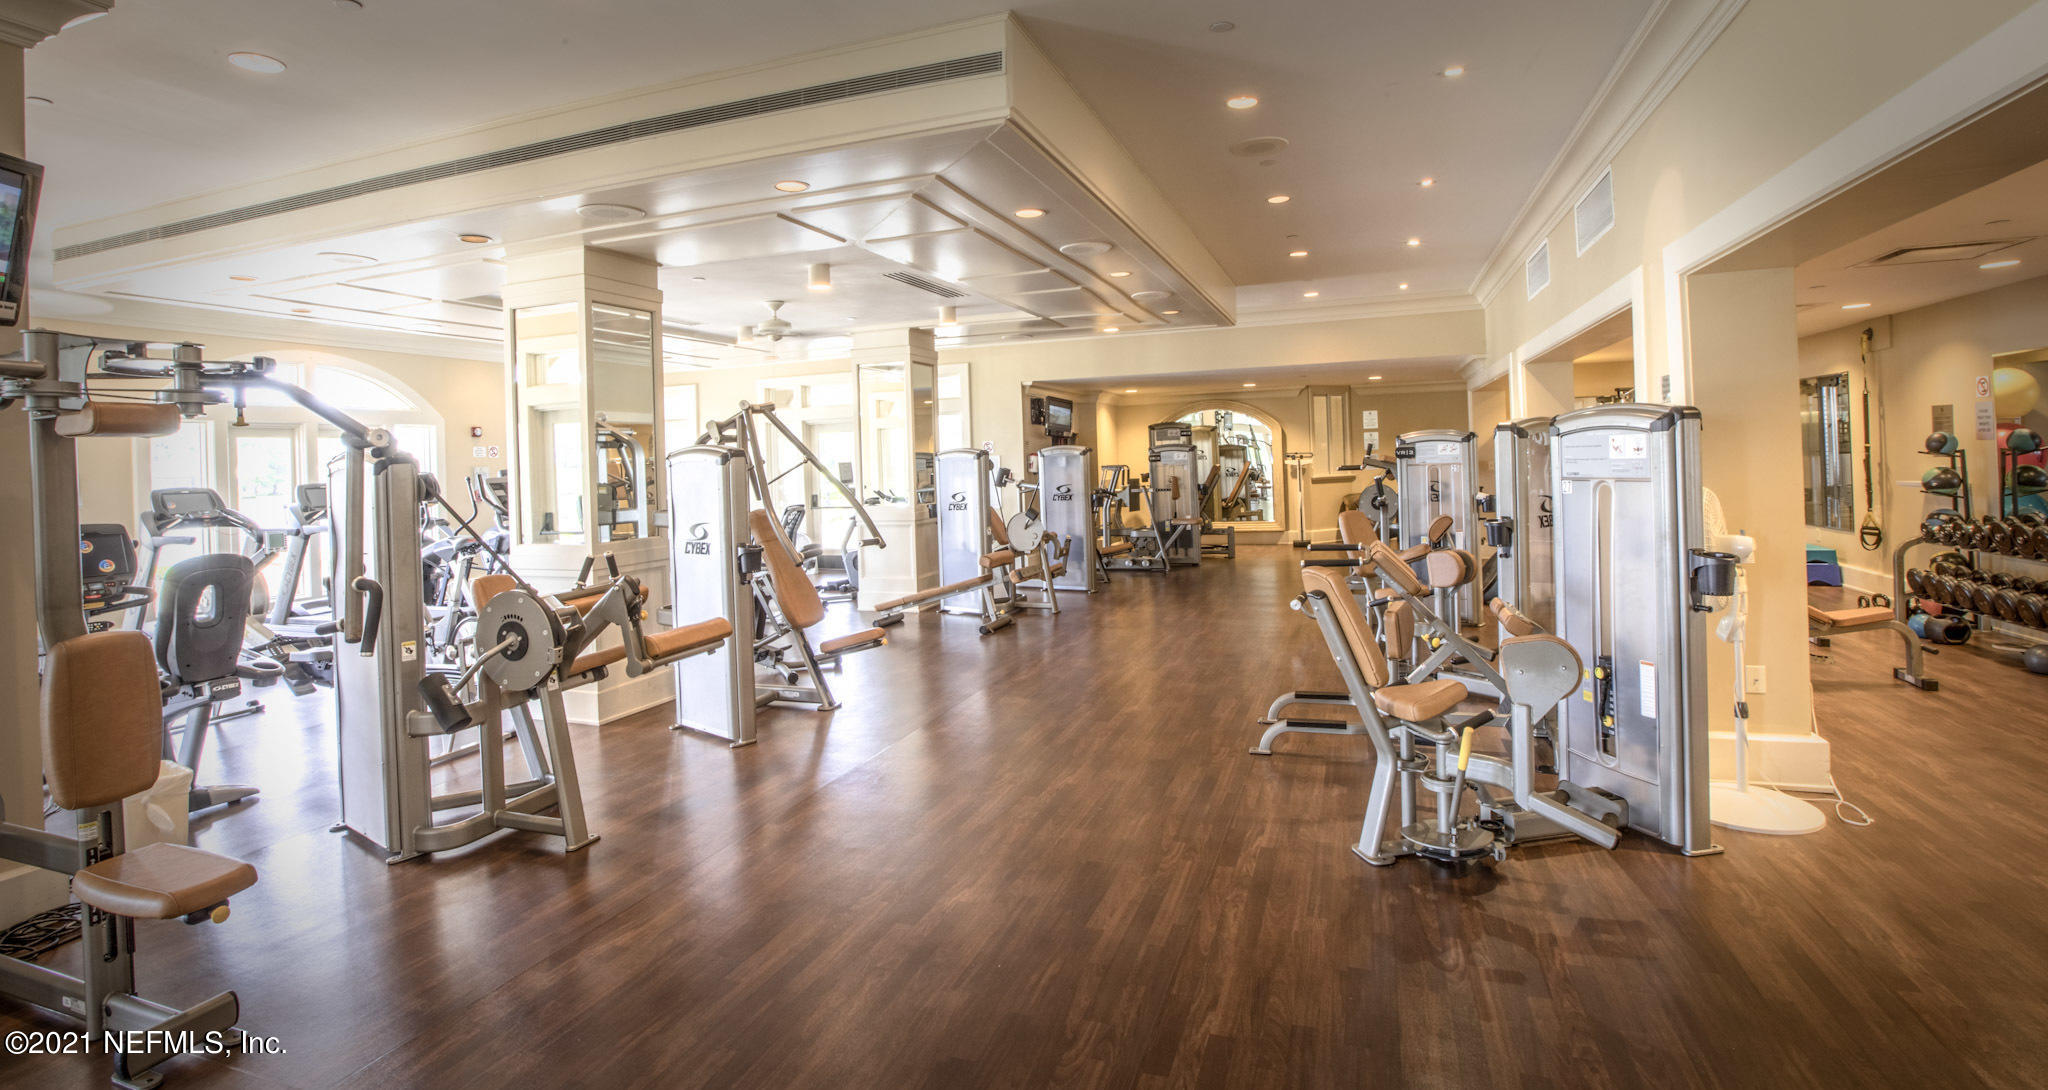 Fitness Room (7 of 7) (1)